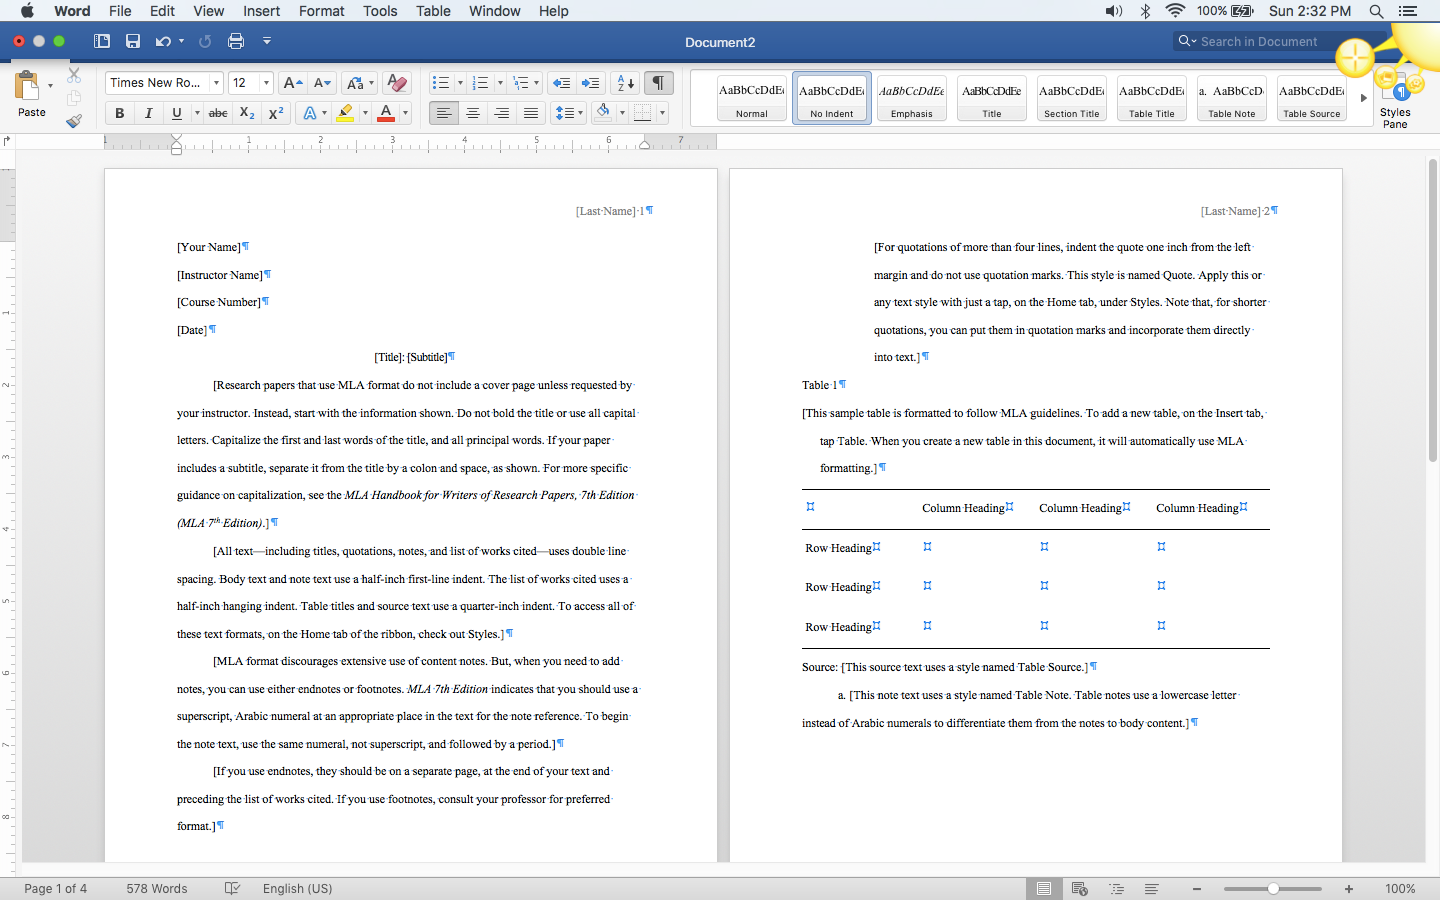 screenshot of MLA template in Word